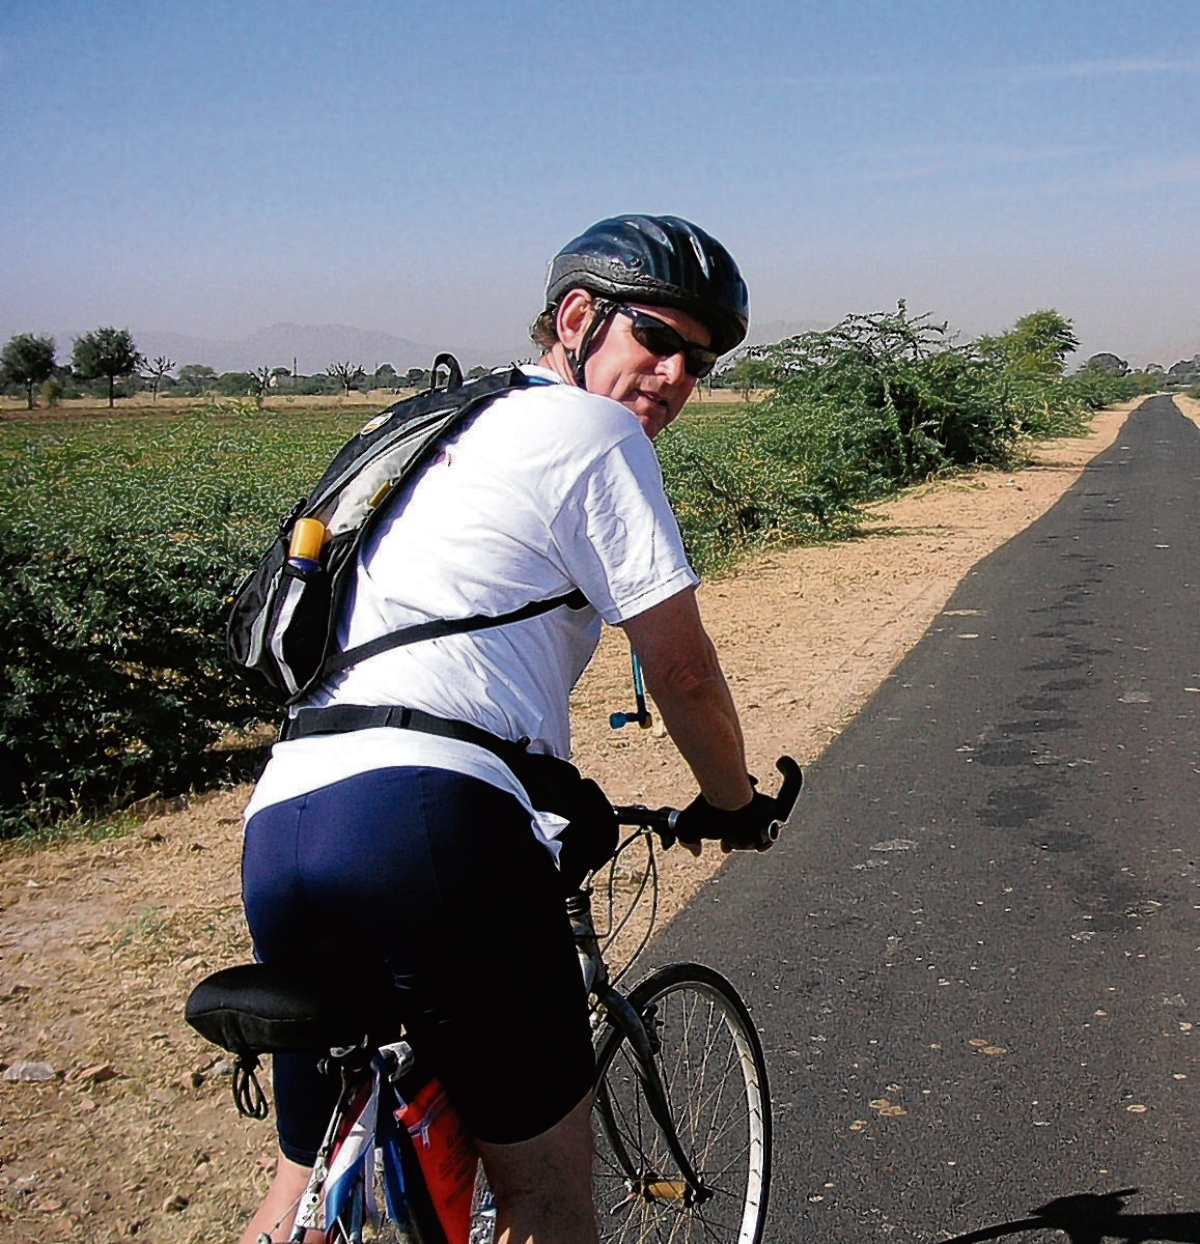 Alcohol charity founder cycles 500km across